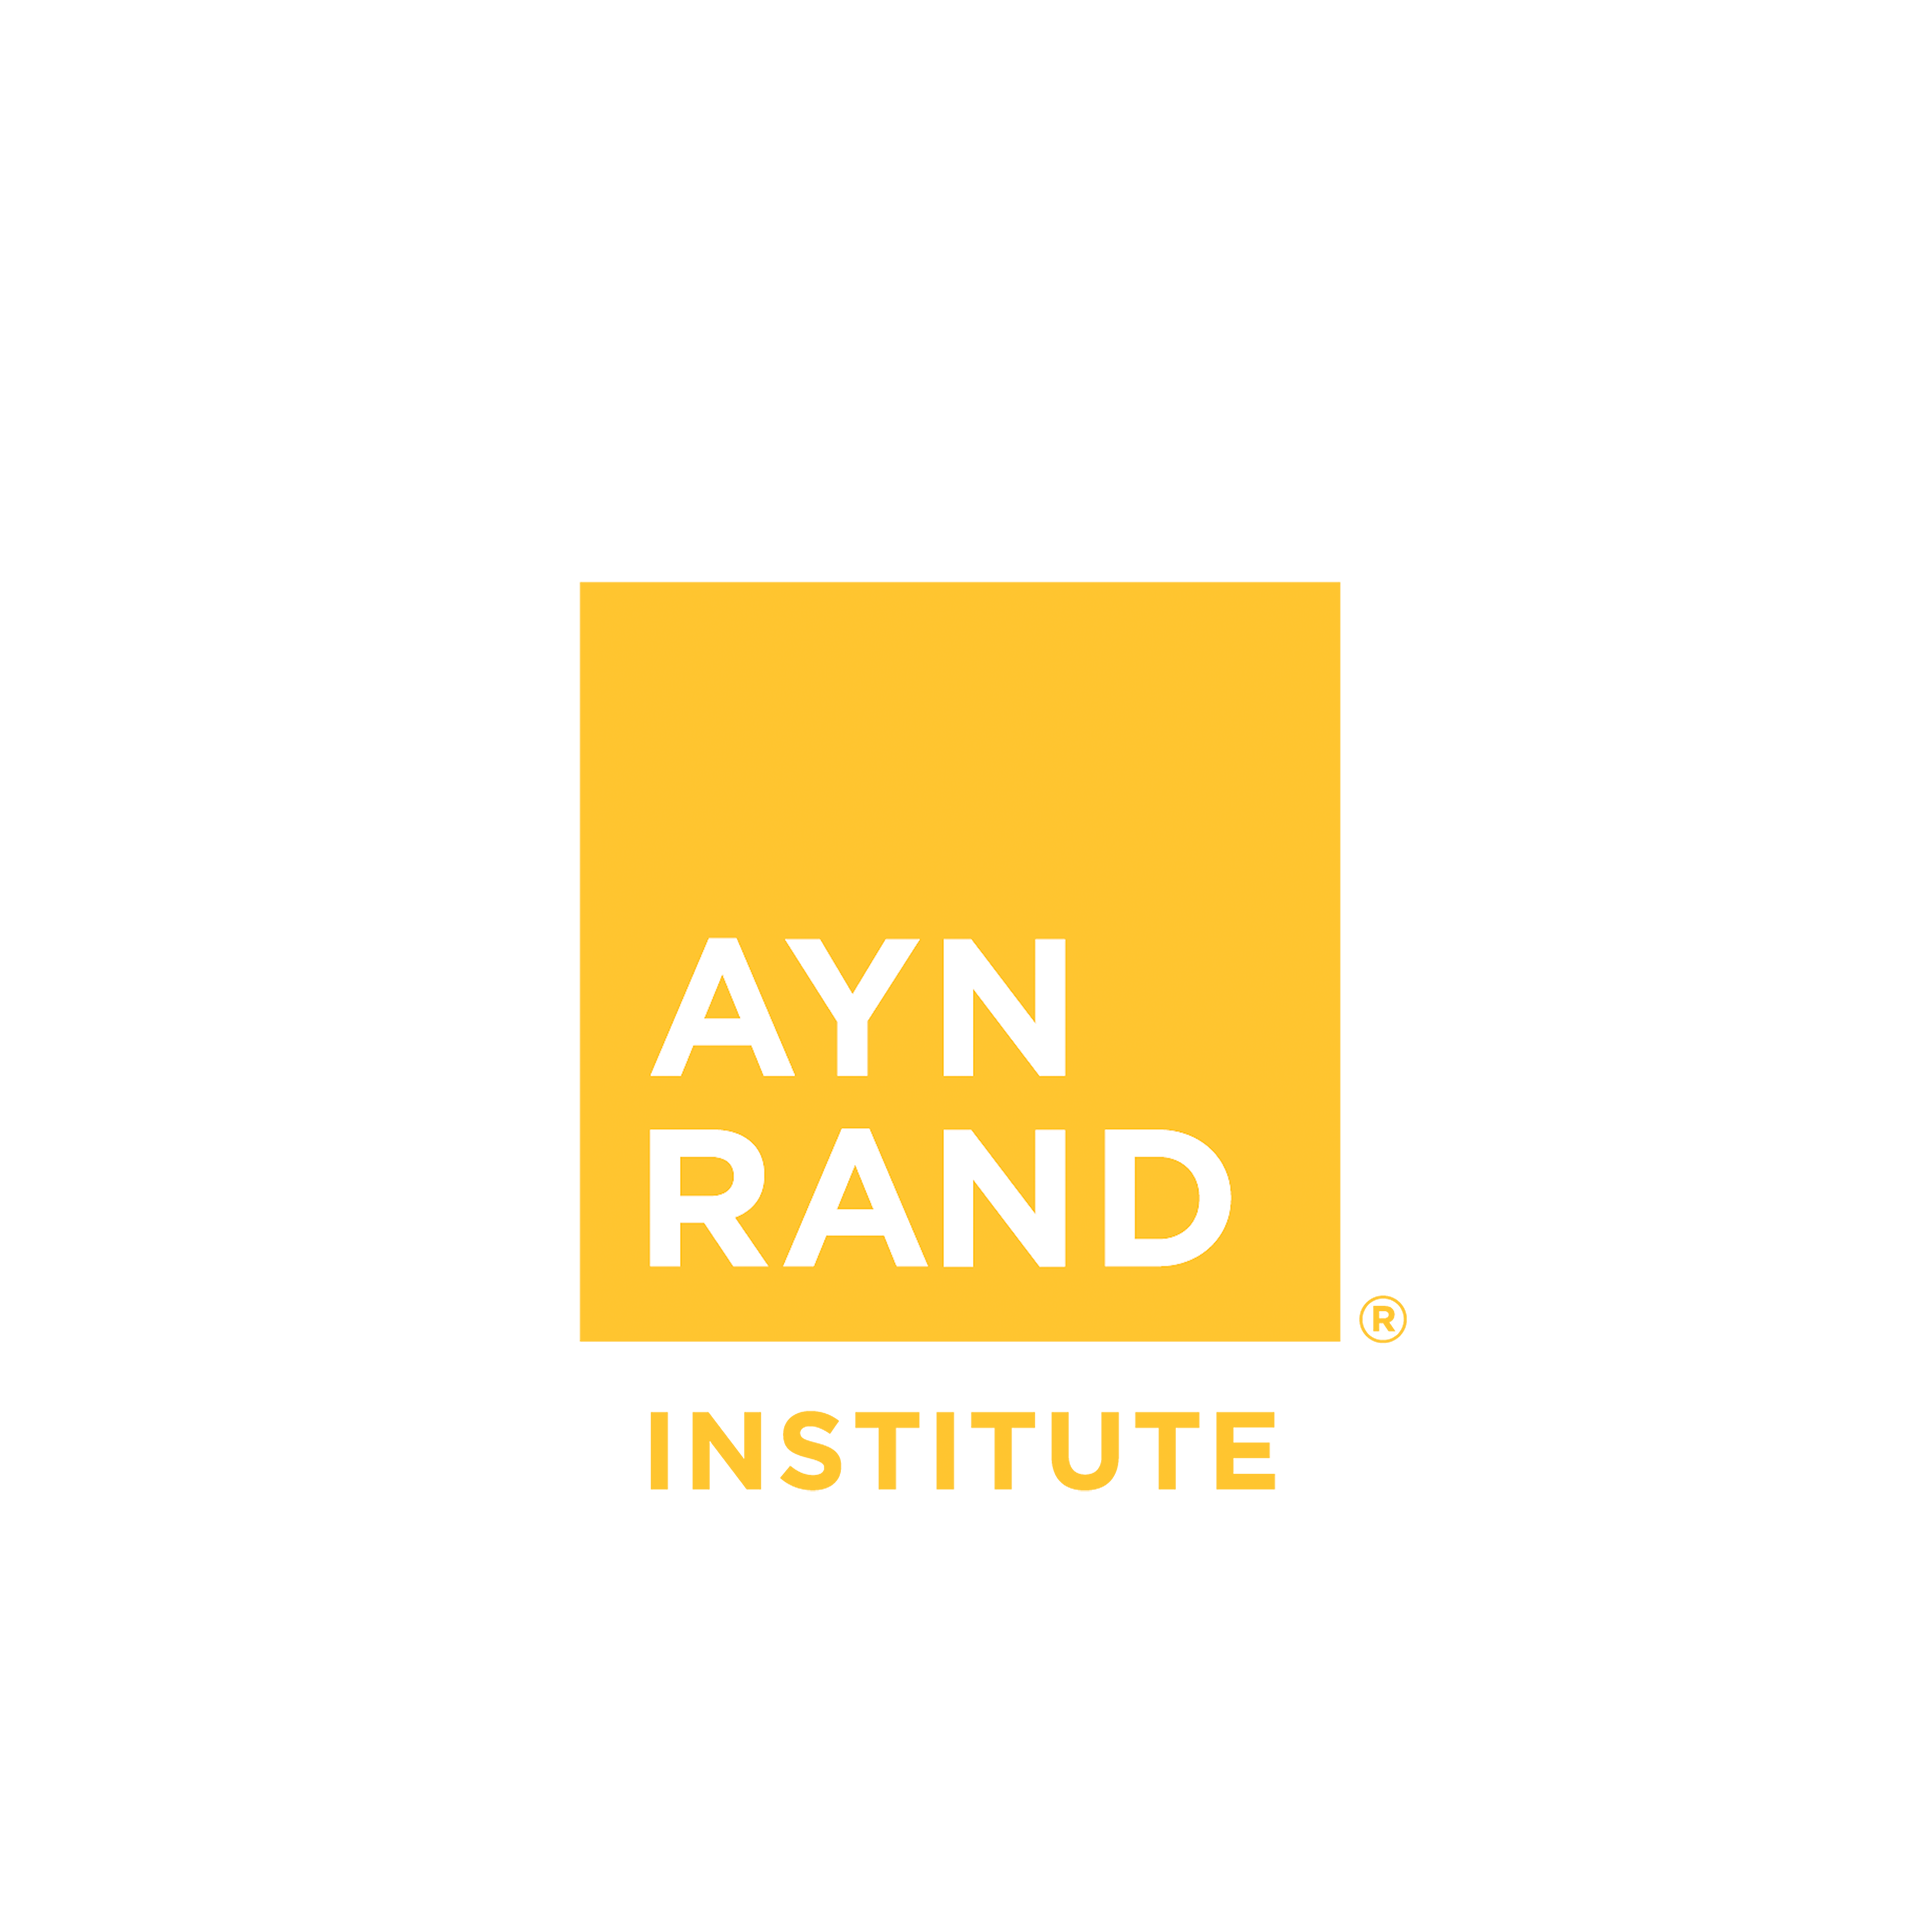 ayn rand writing contest We the living essay contest submission did ayn rand believe communism is a noble idea that was betrayed by power-hungry leaders.